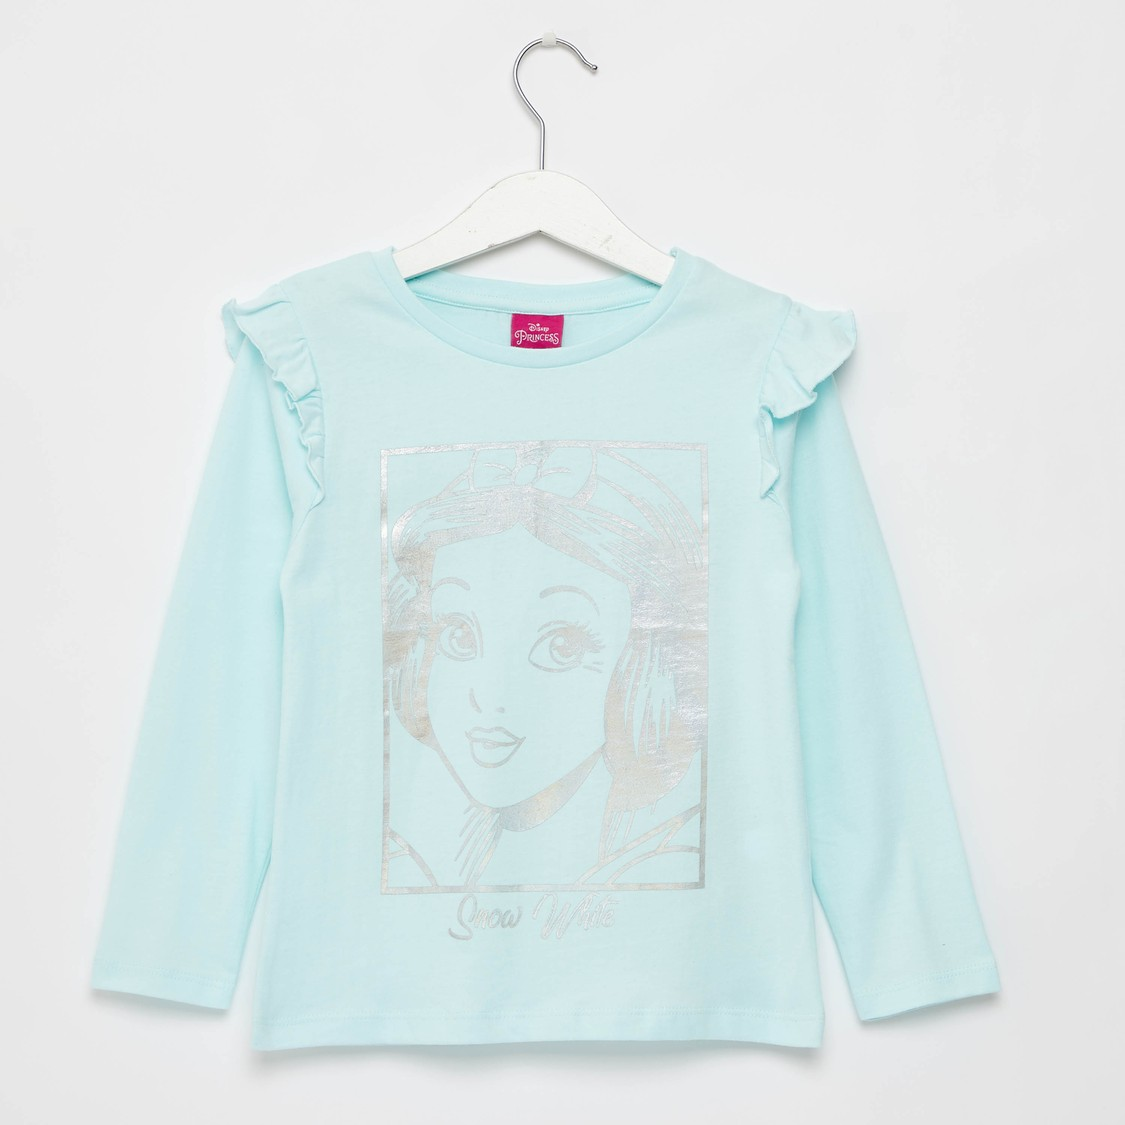 Snow White Graphic Print T-shirt with Long Sleeves and Frill Detail